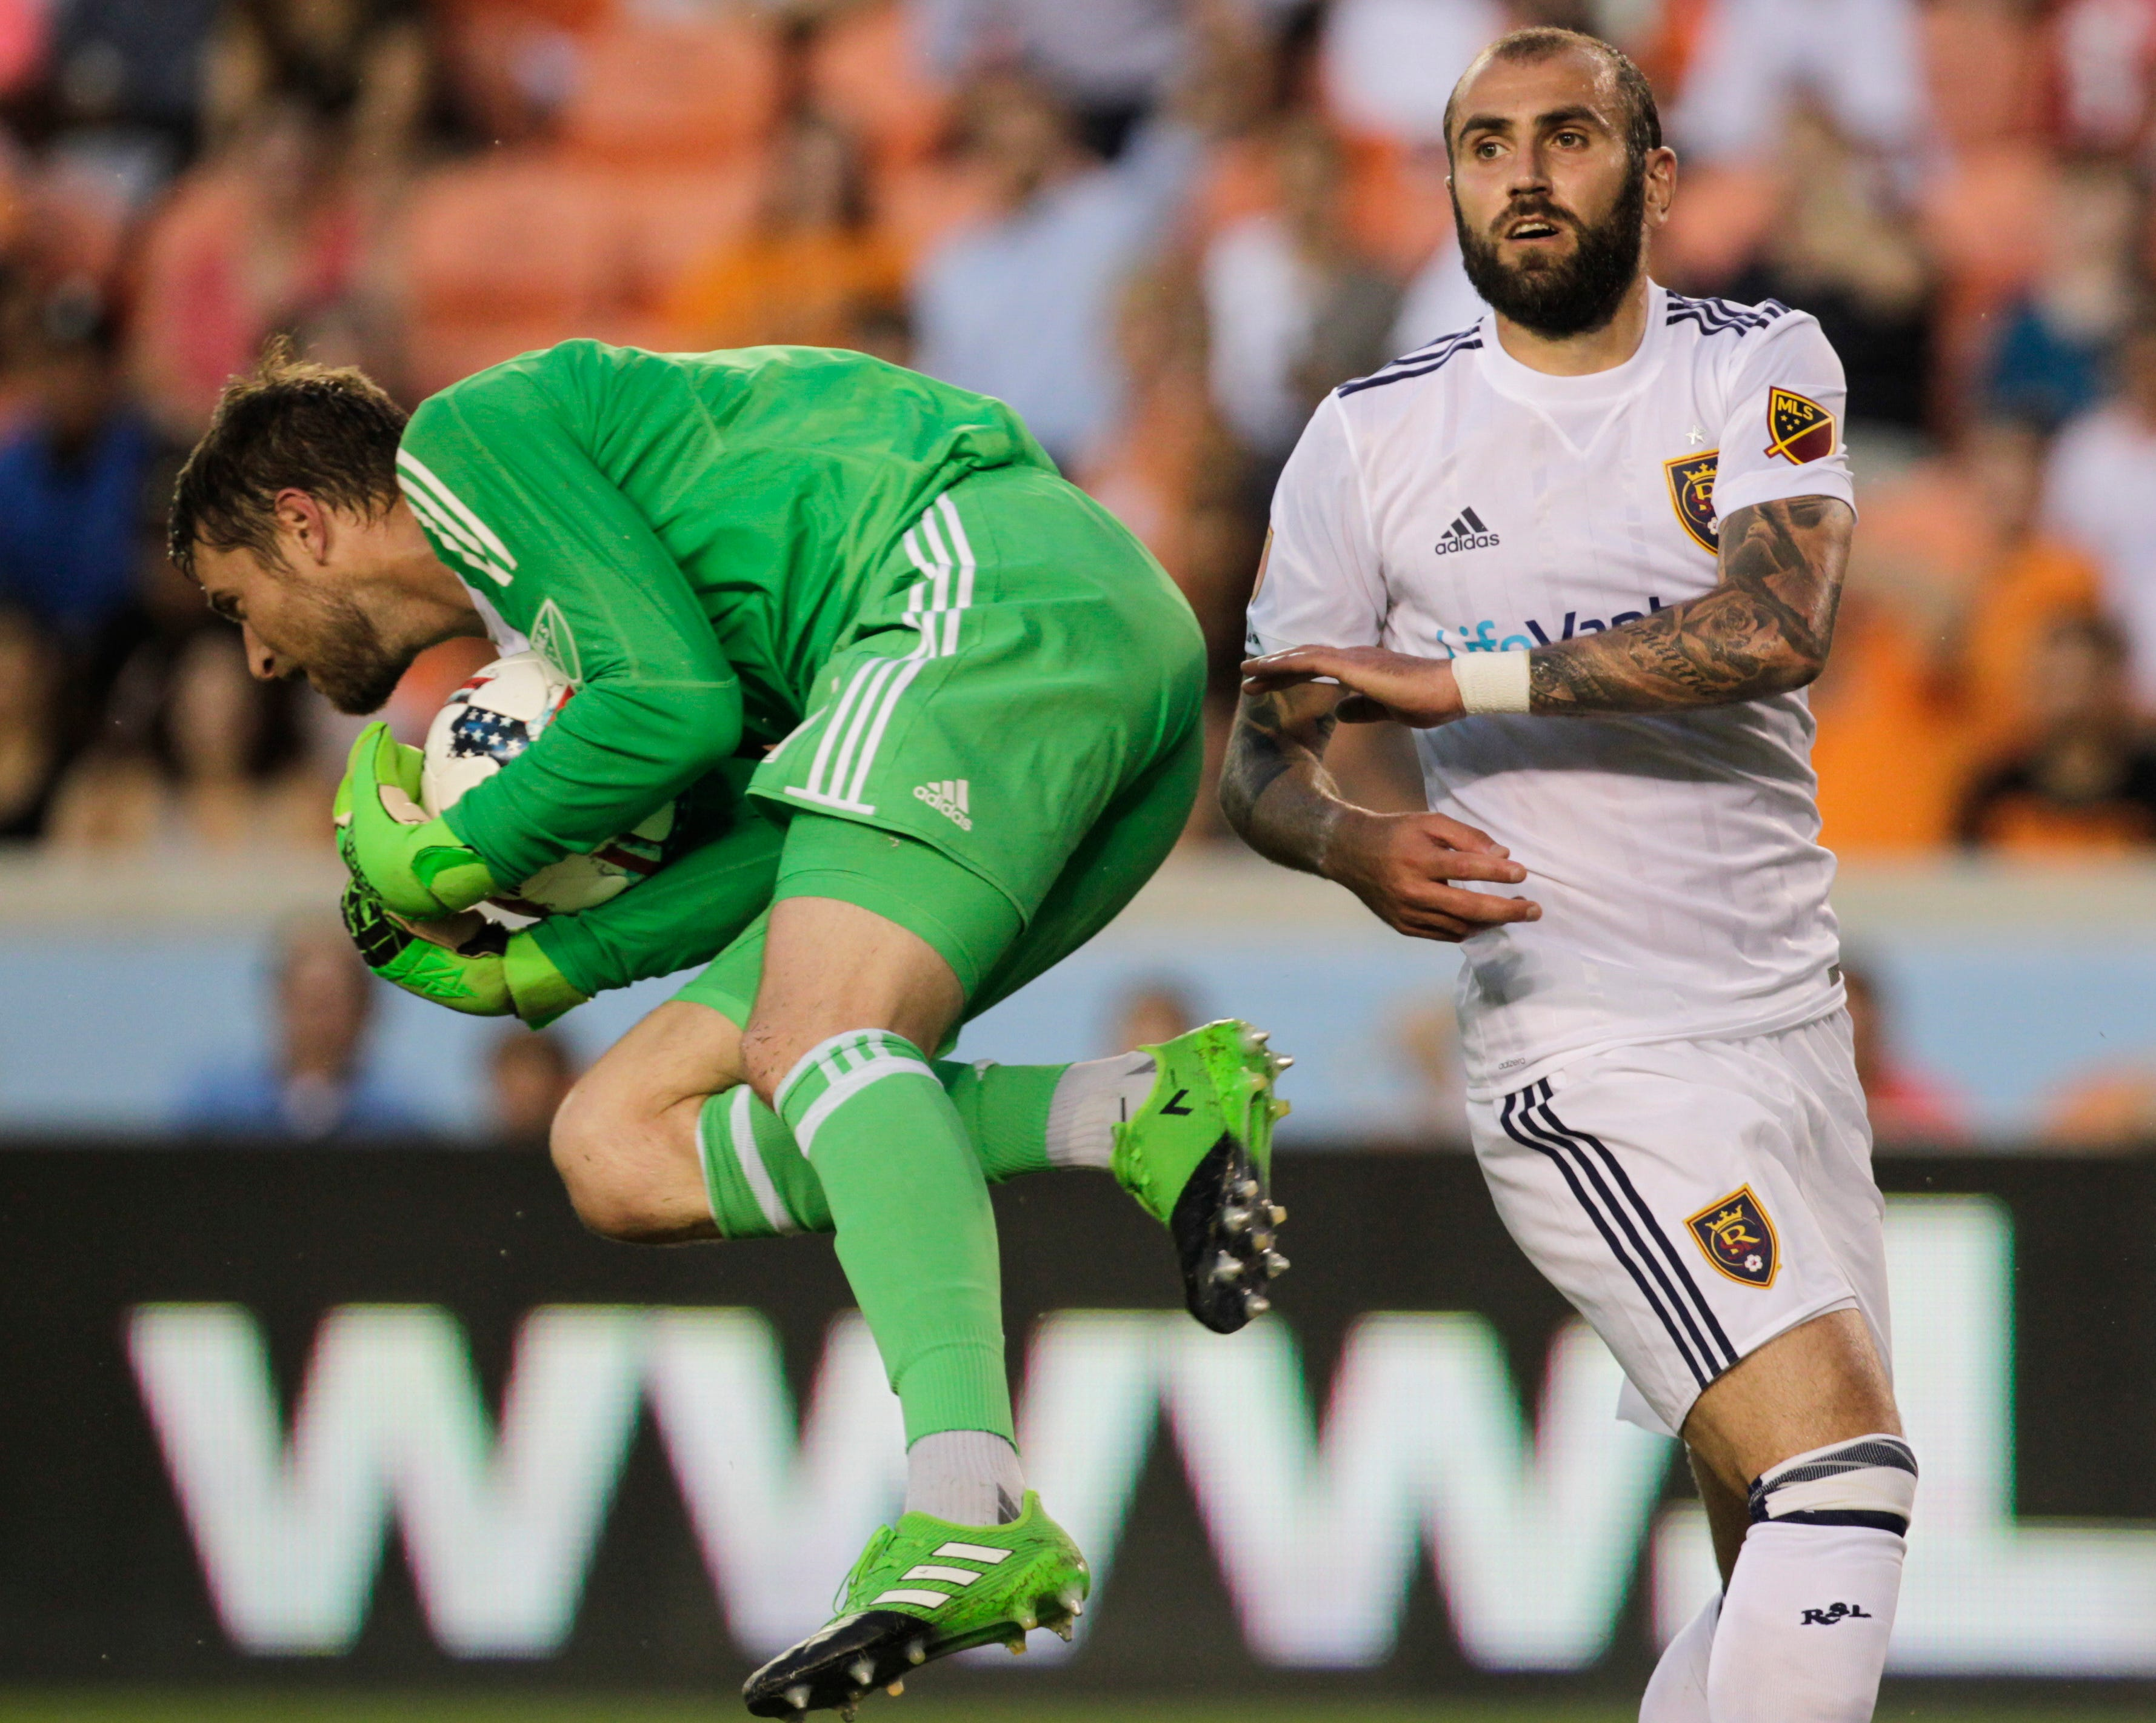 Dynamo beats RSL 5-1 to move into 1st in Western Conference